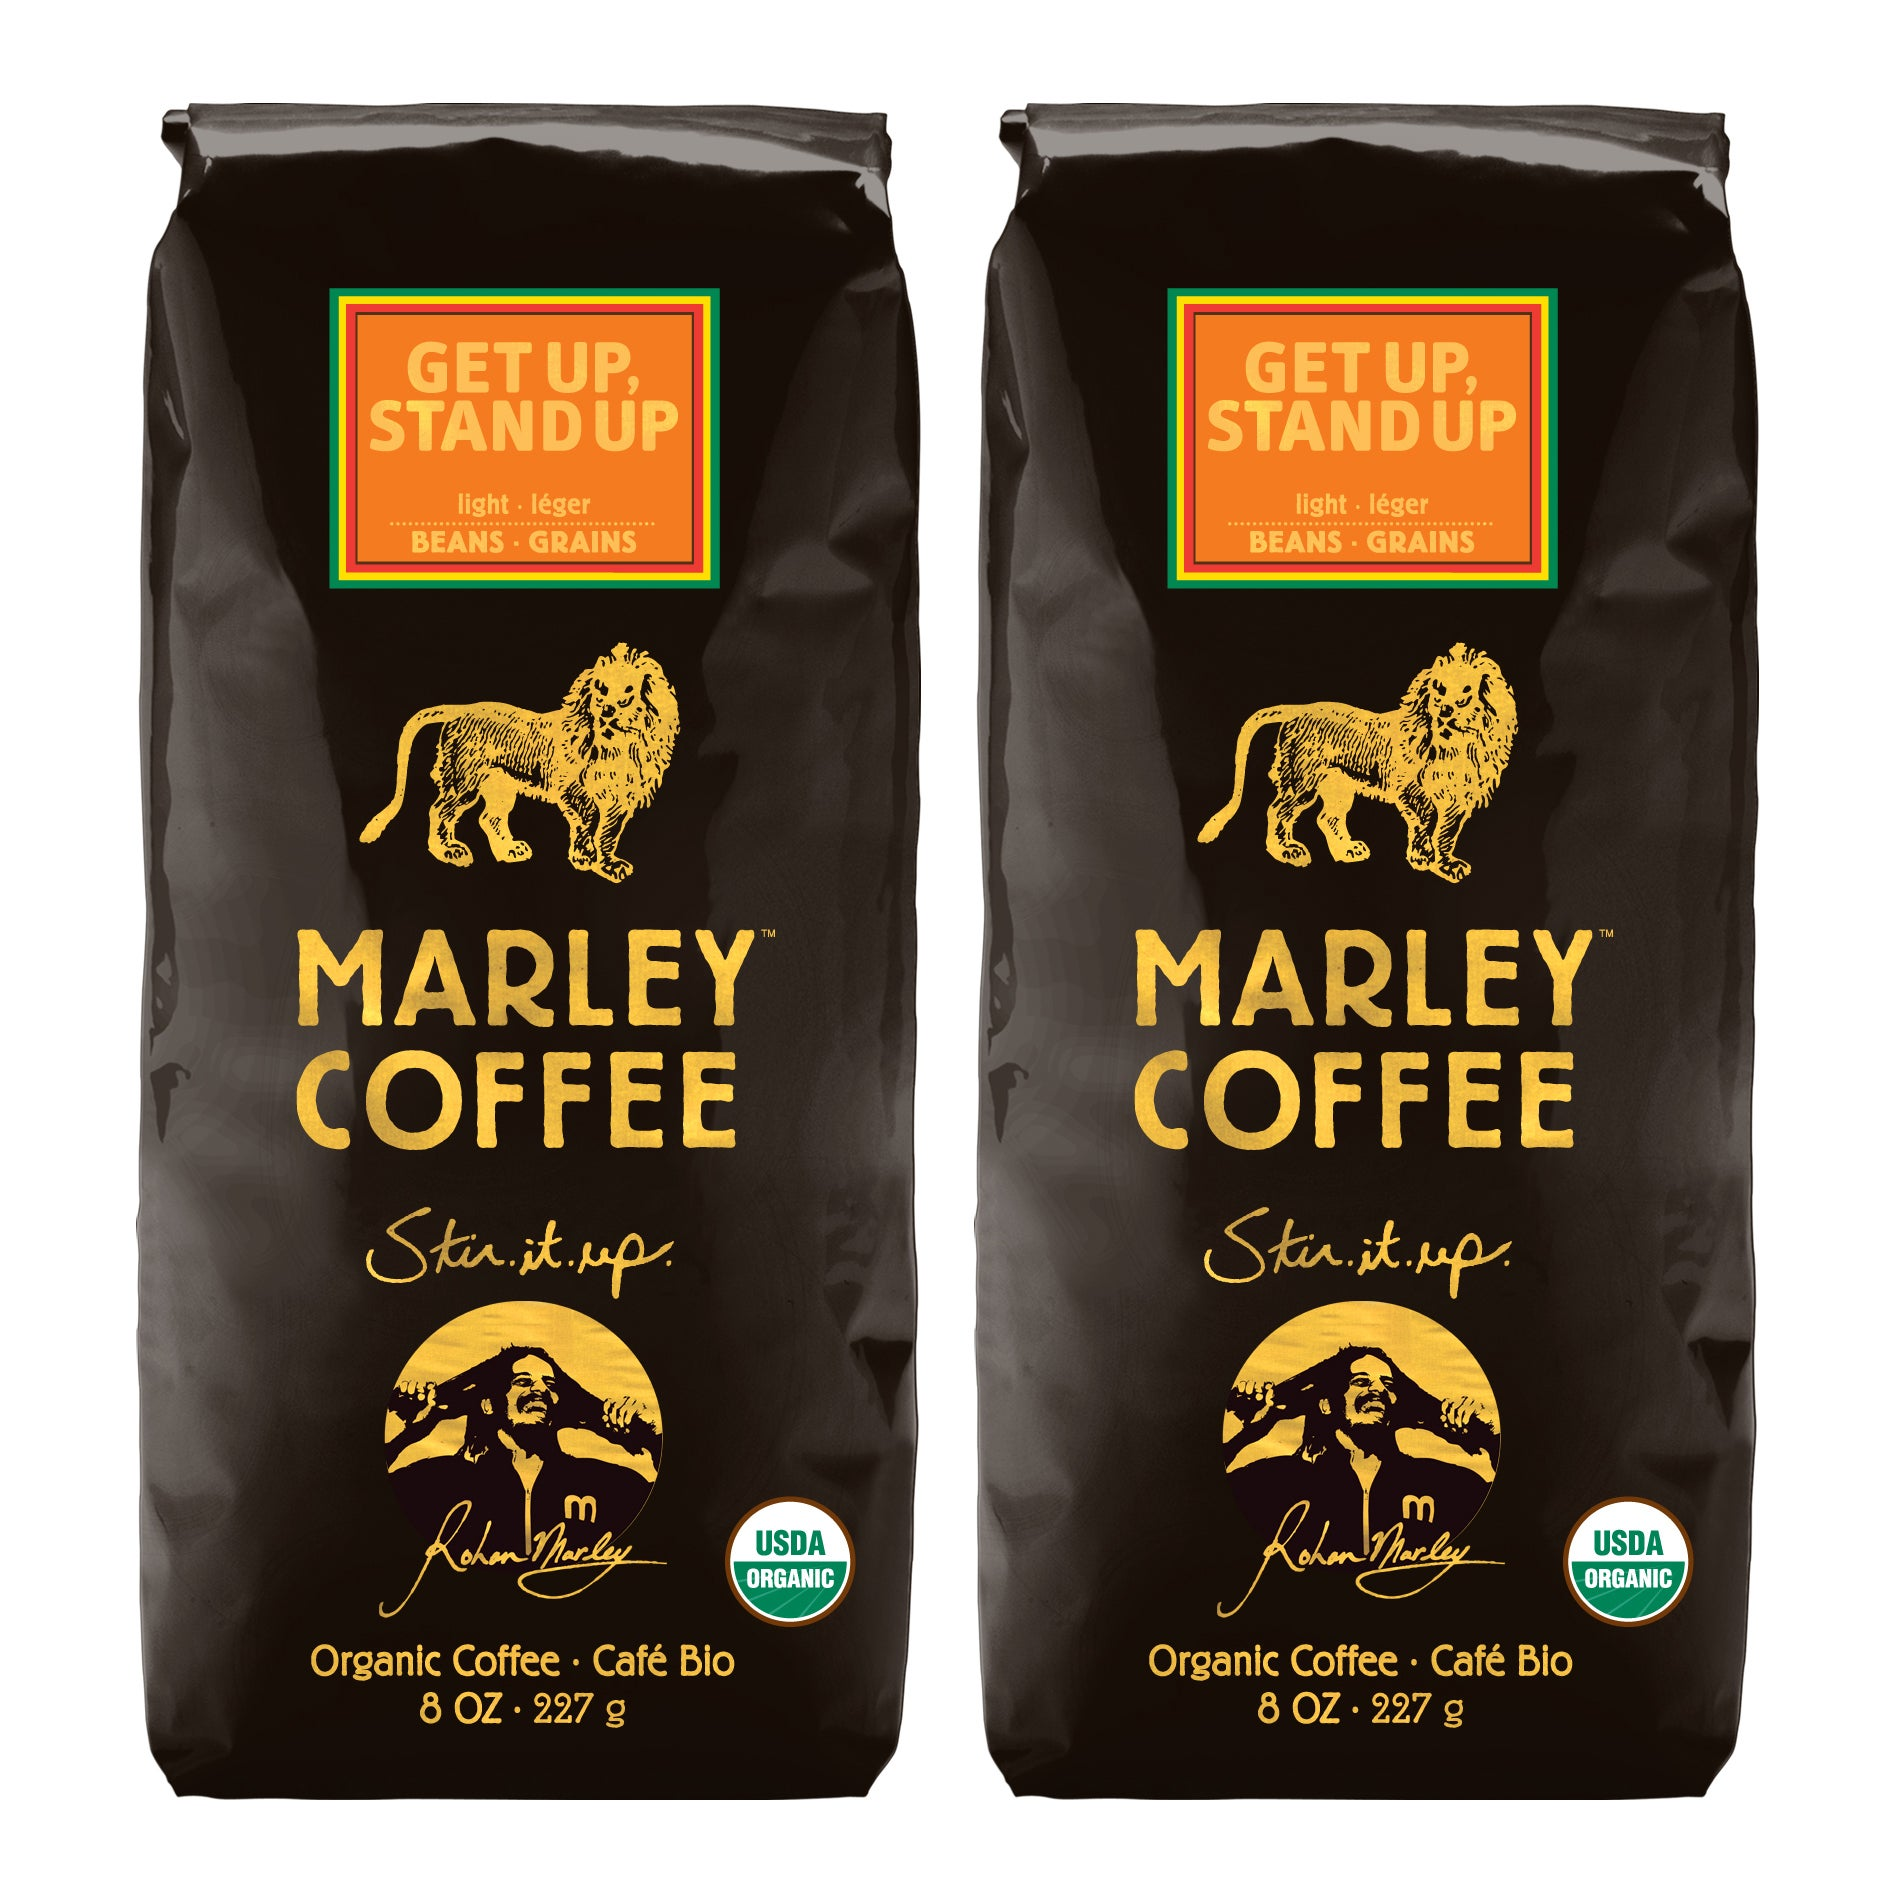 Marley Coffee Get Up Stand Up Whole Bean Coffee (1 Pound)